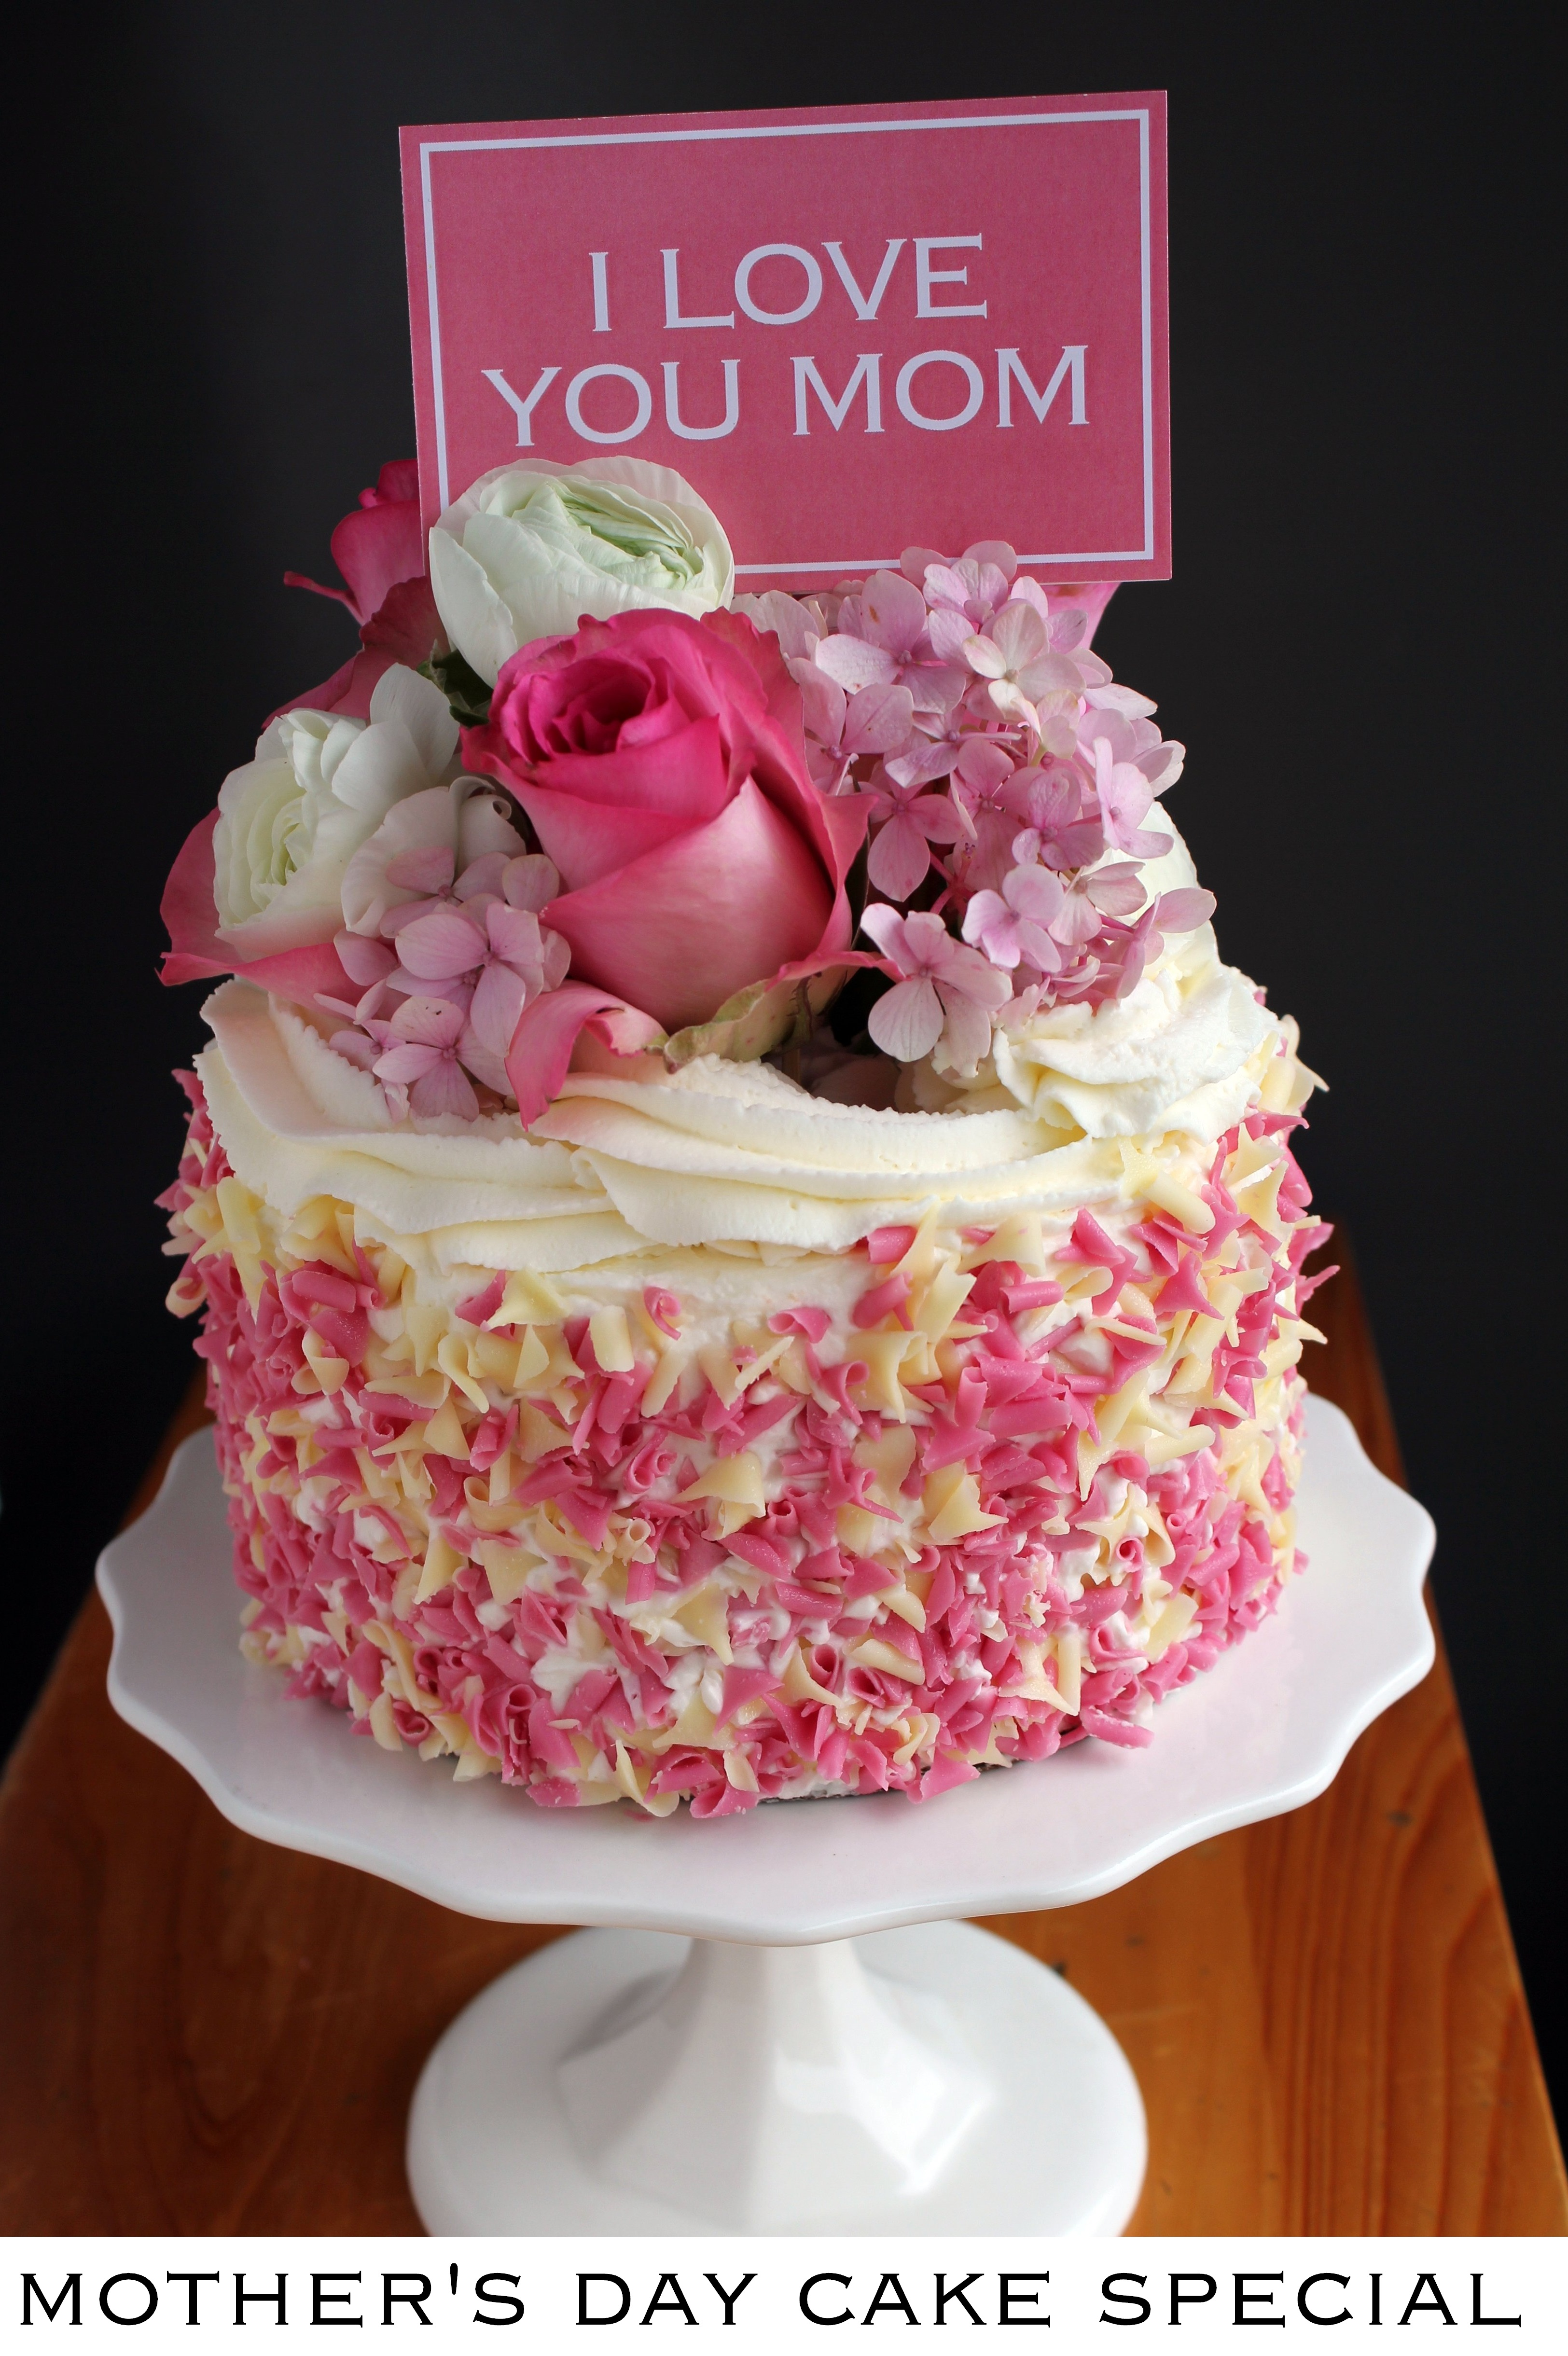 Cake Pictures For Mom : Birthday Cake For Mom - CAKE DESIGN